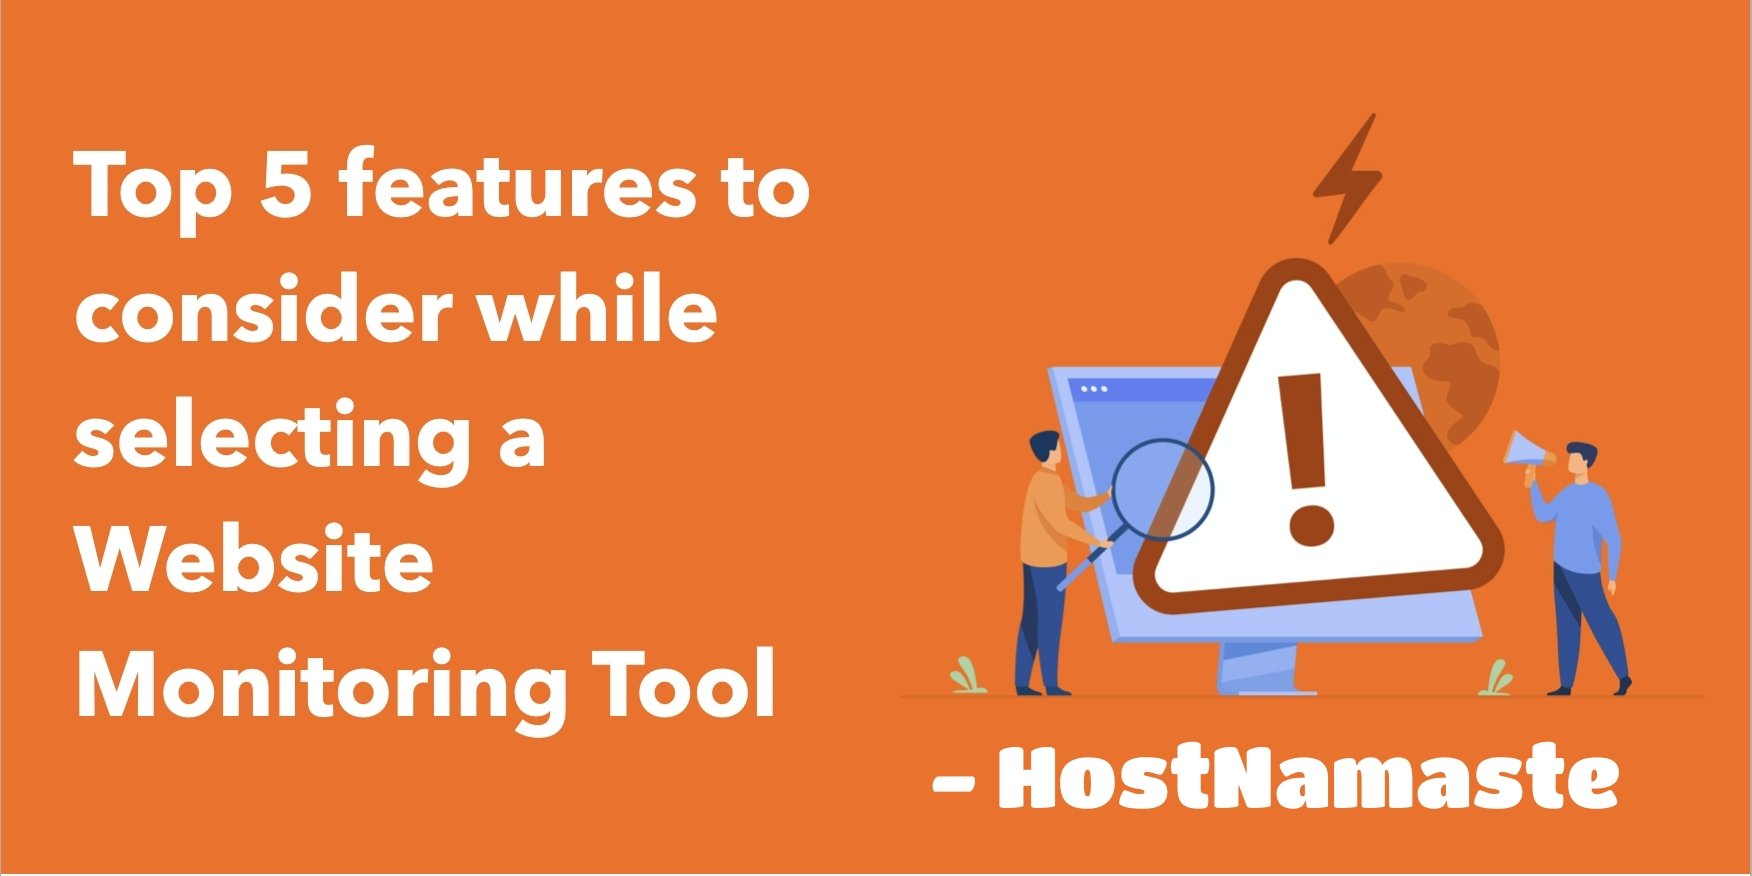 Top 5 Features you should consider while selecting a Website Monitoring Tool & Software - Freshping - HostNamaste